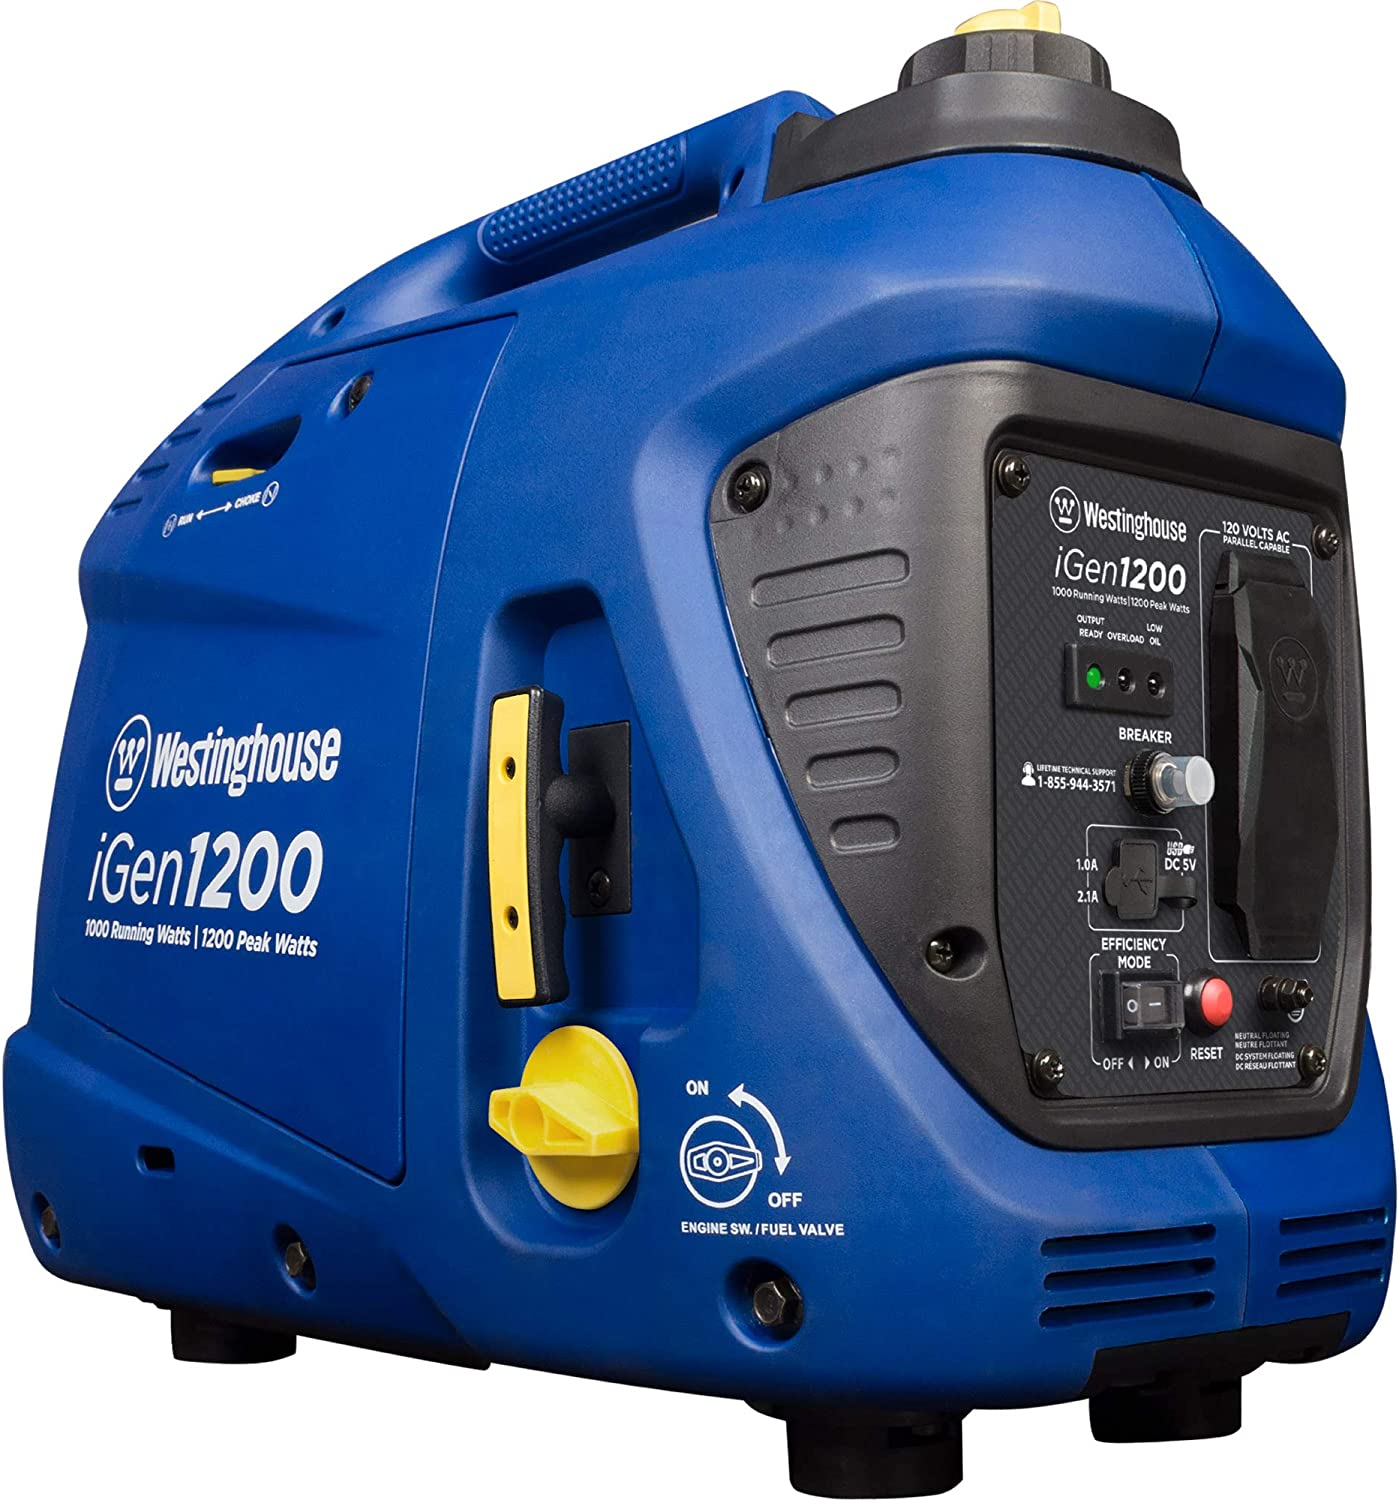 Westinghouse iGen1200 Portable Inverter Generator 1000 Rated 1200 Peak Watts, Gas Powered, CARB Compliant